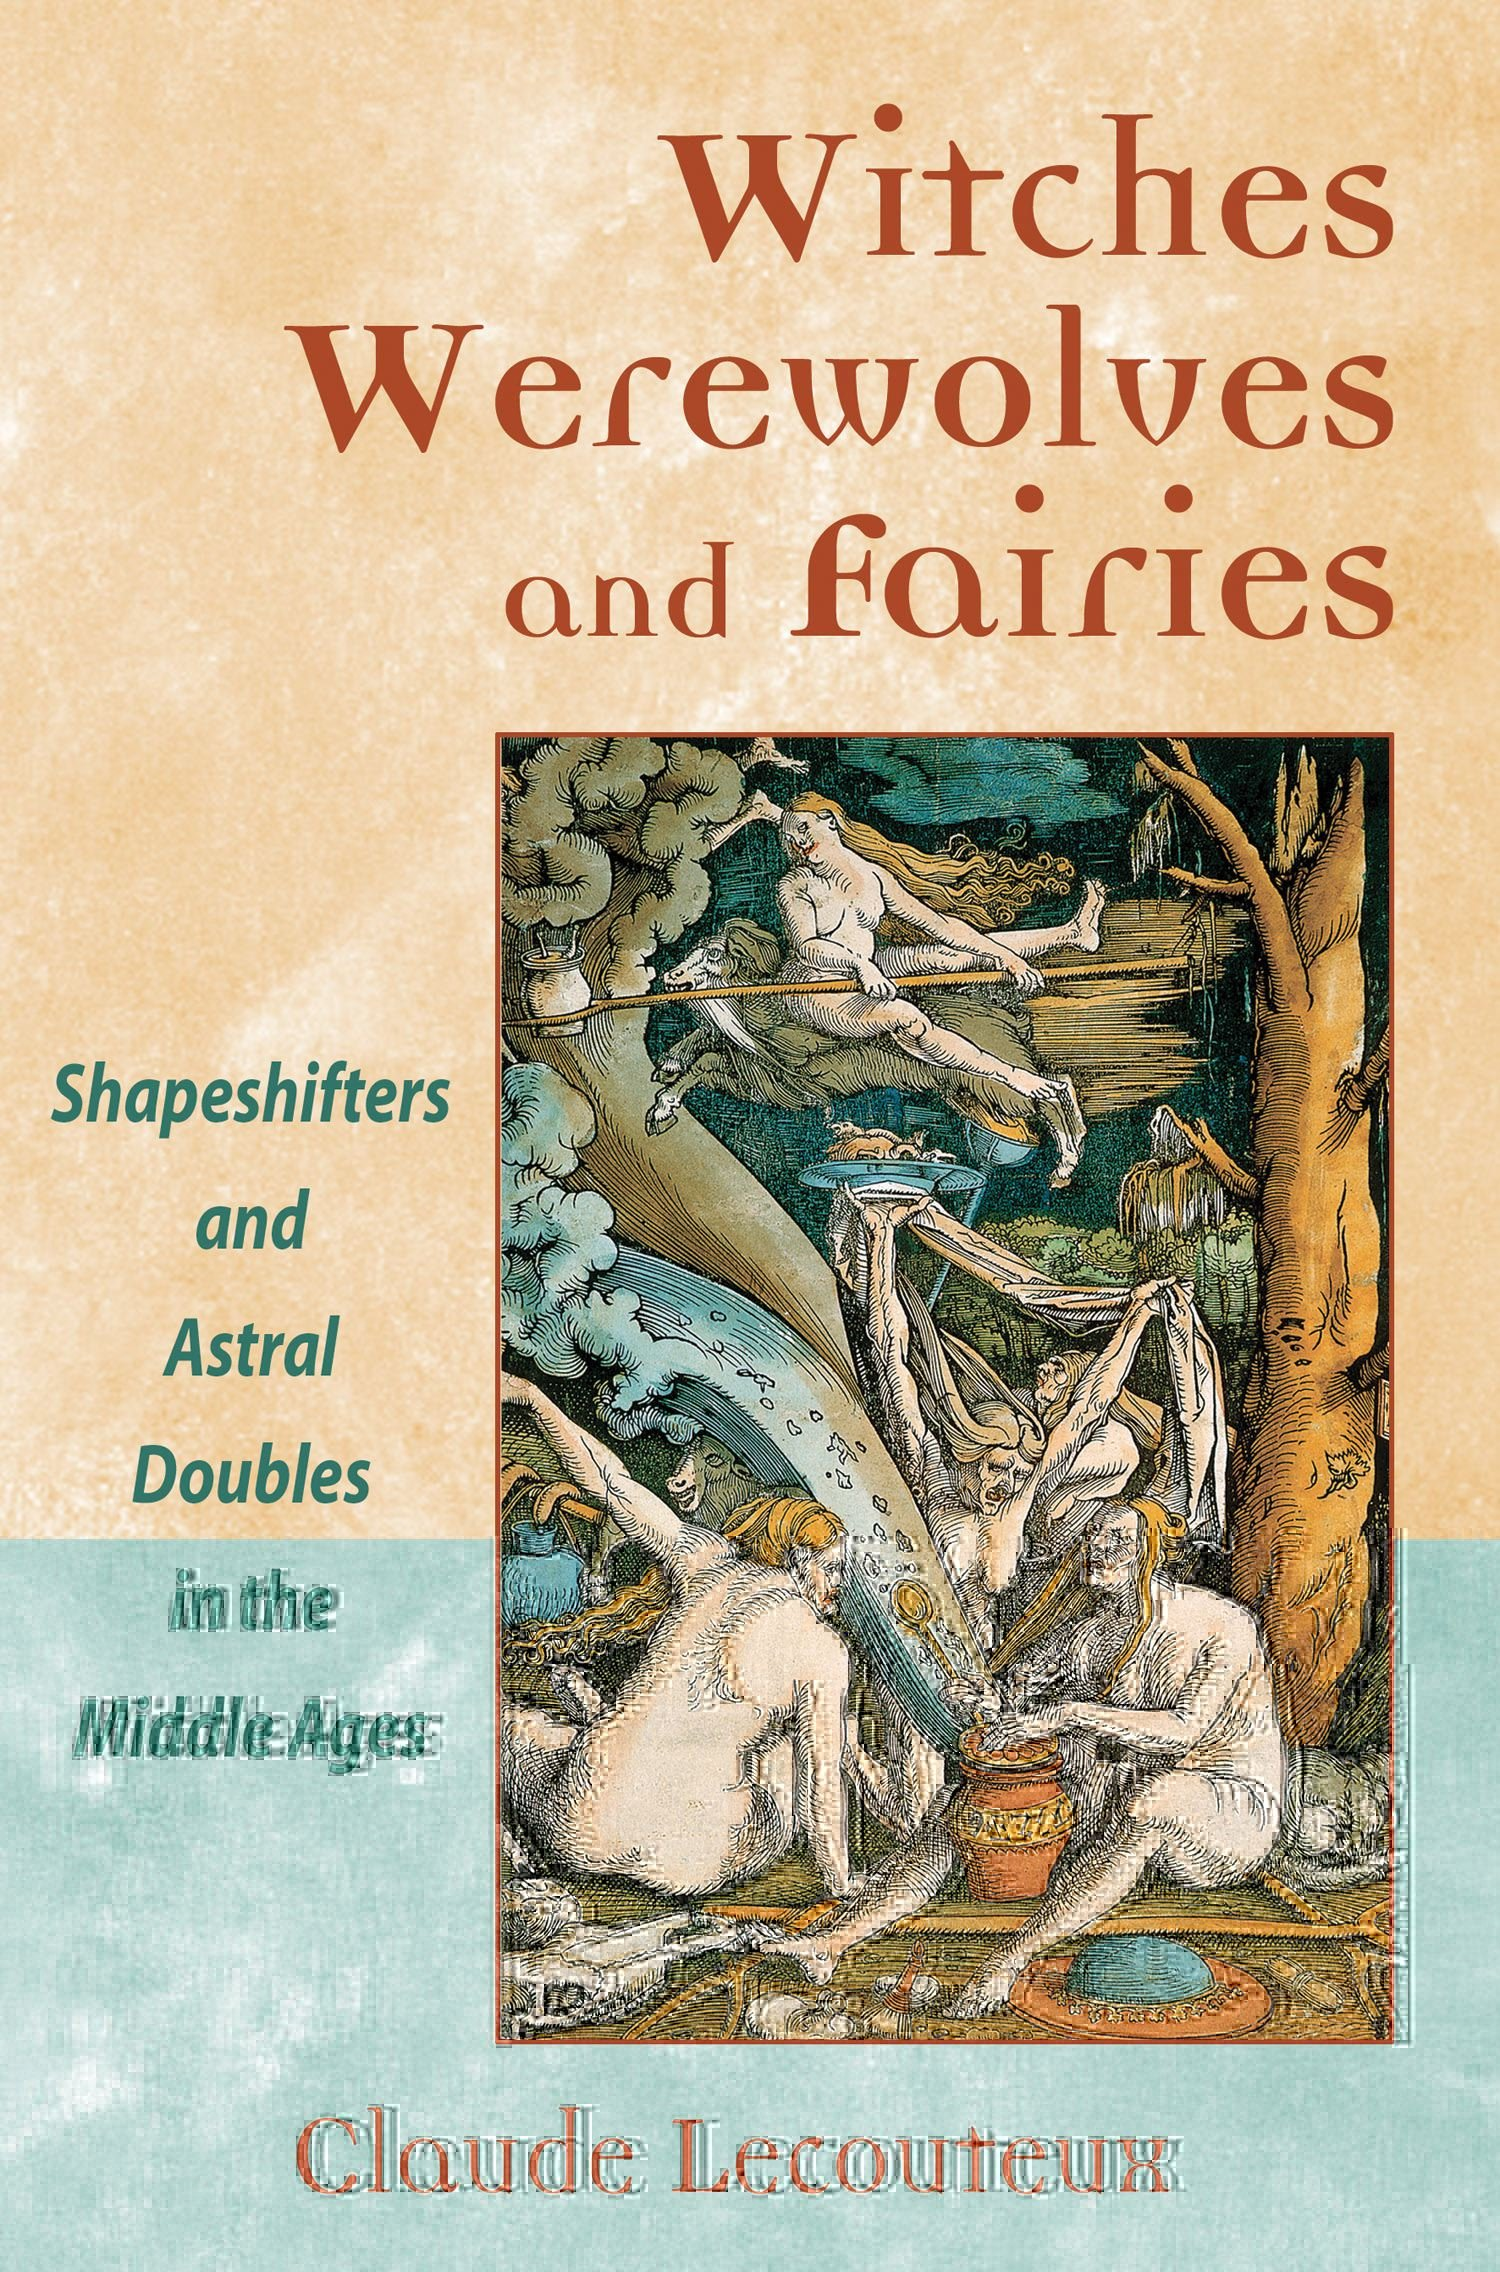 Read Online Witches, Werewolves, and Fairies: Shapeshifters and Astral Doubles in the Middle Ages pdf